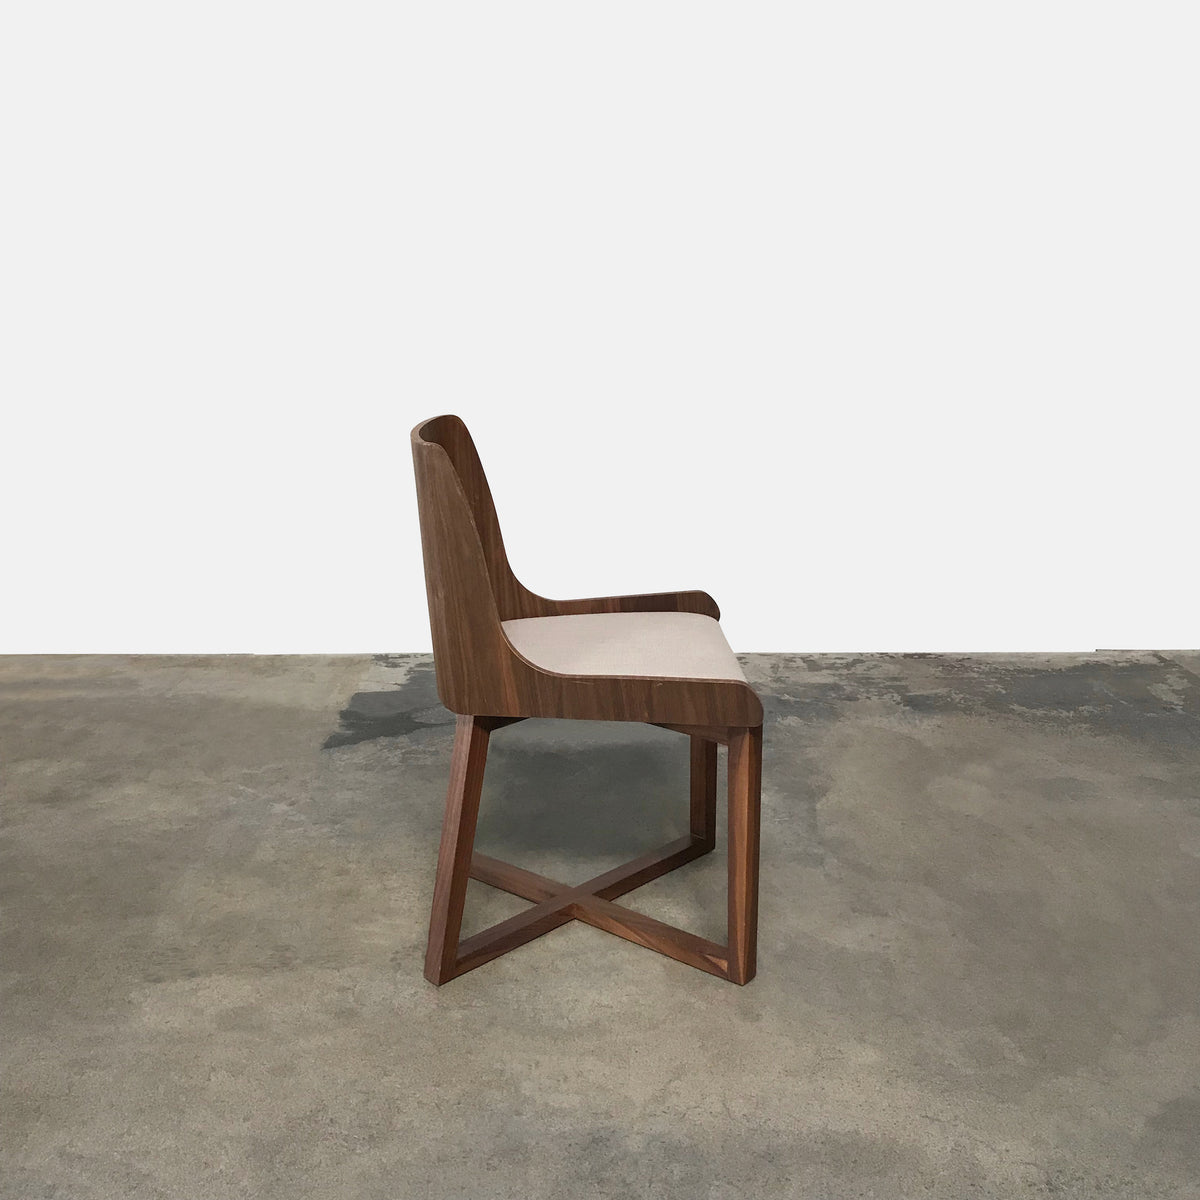 Stella Dining Chairs (set of 4) - $199 each